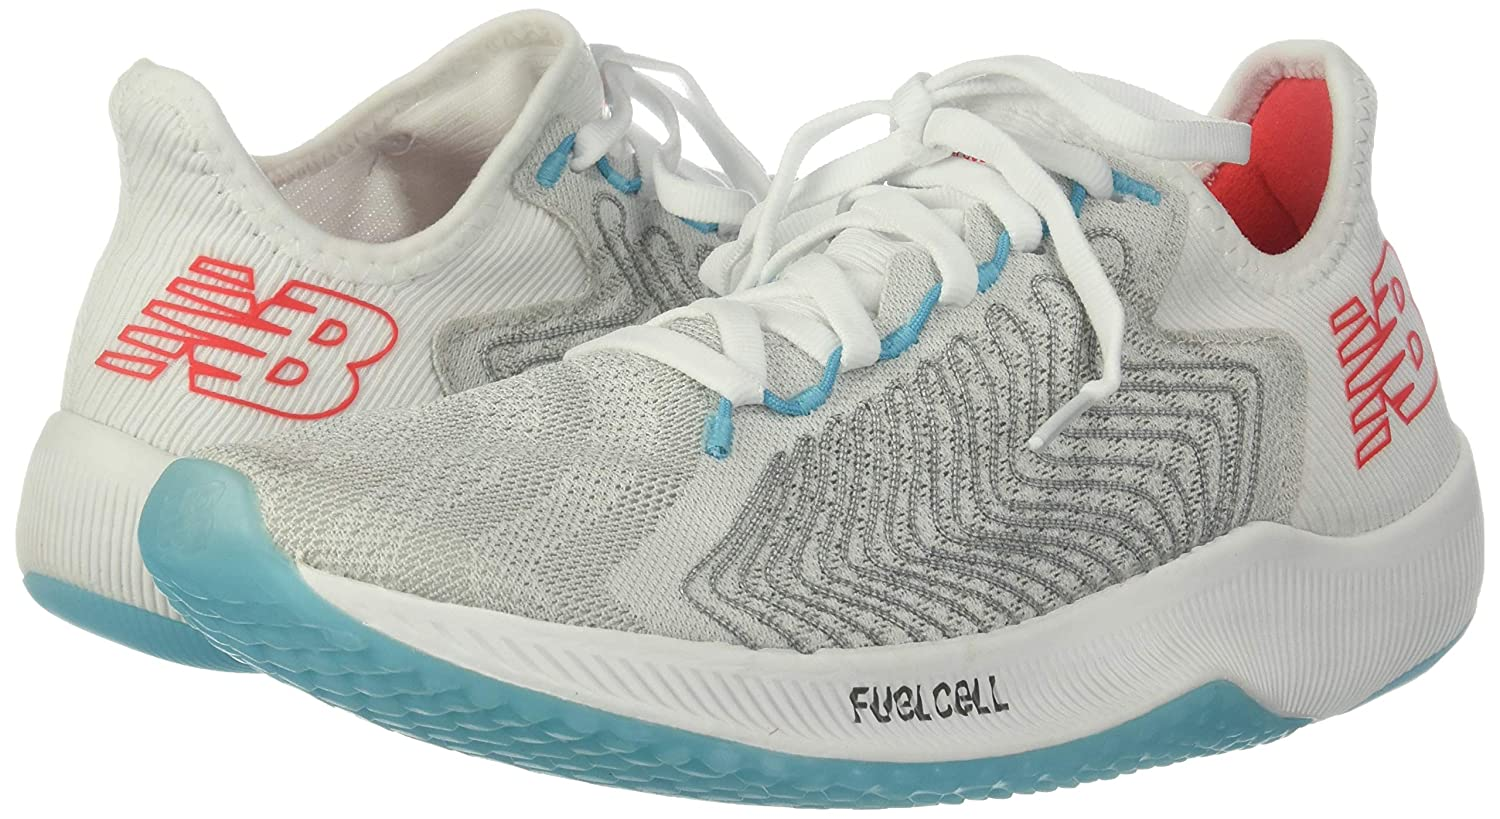 New Balance Chaussures Femme FuelCell Rebel: Amazon.es: Deportes y ...